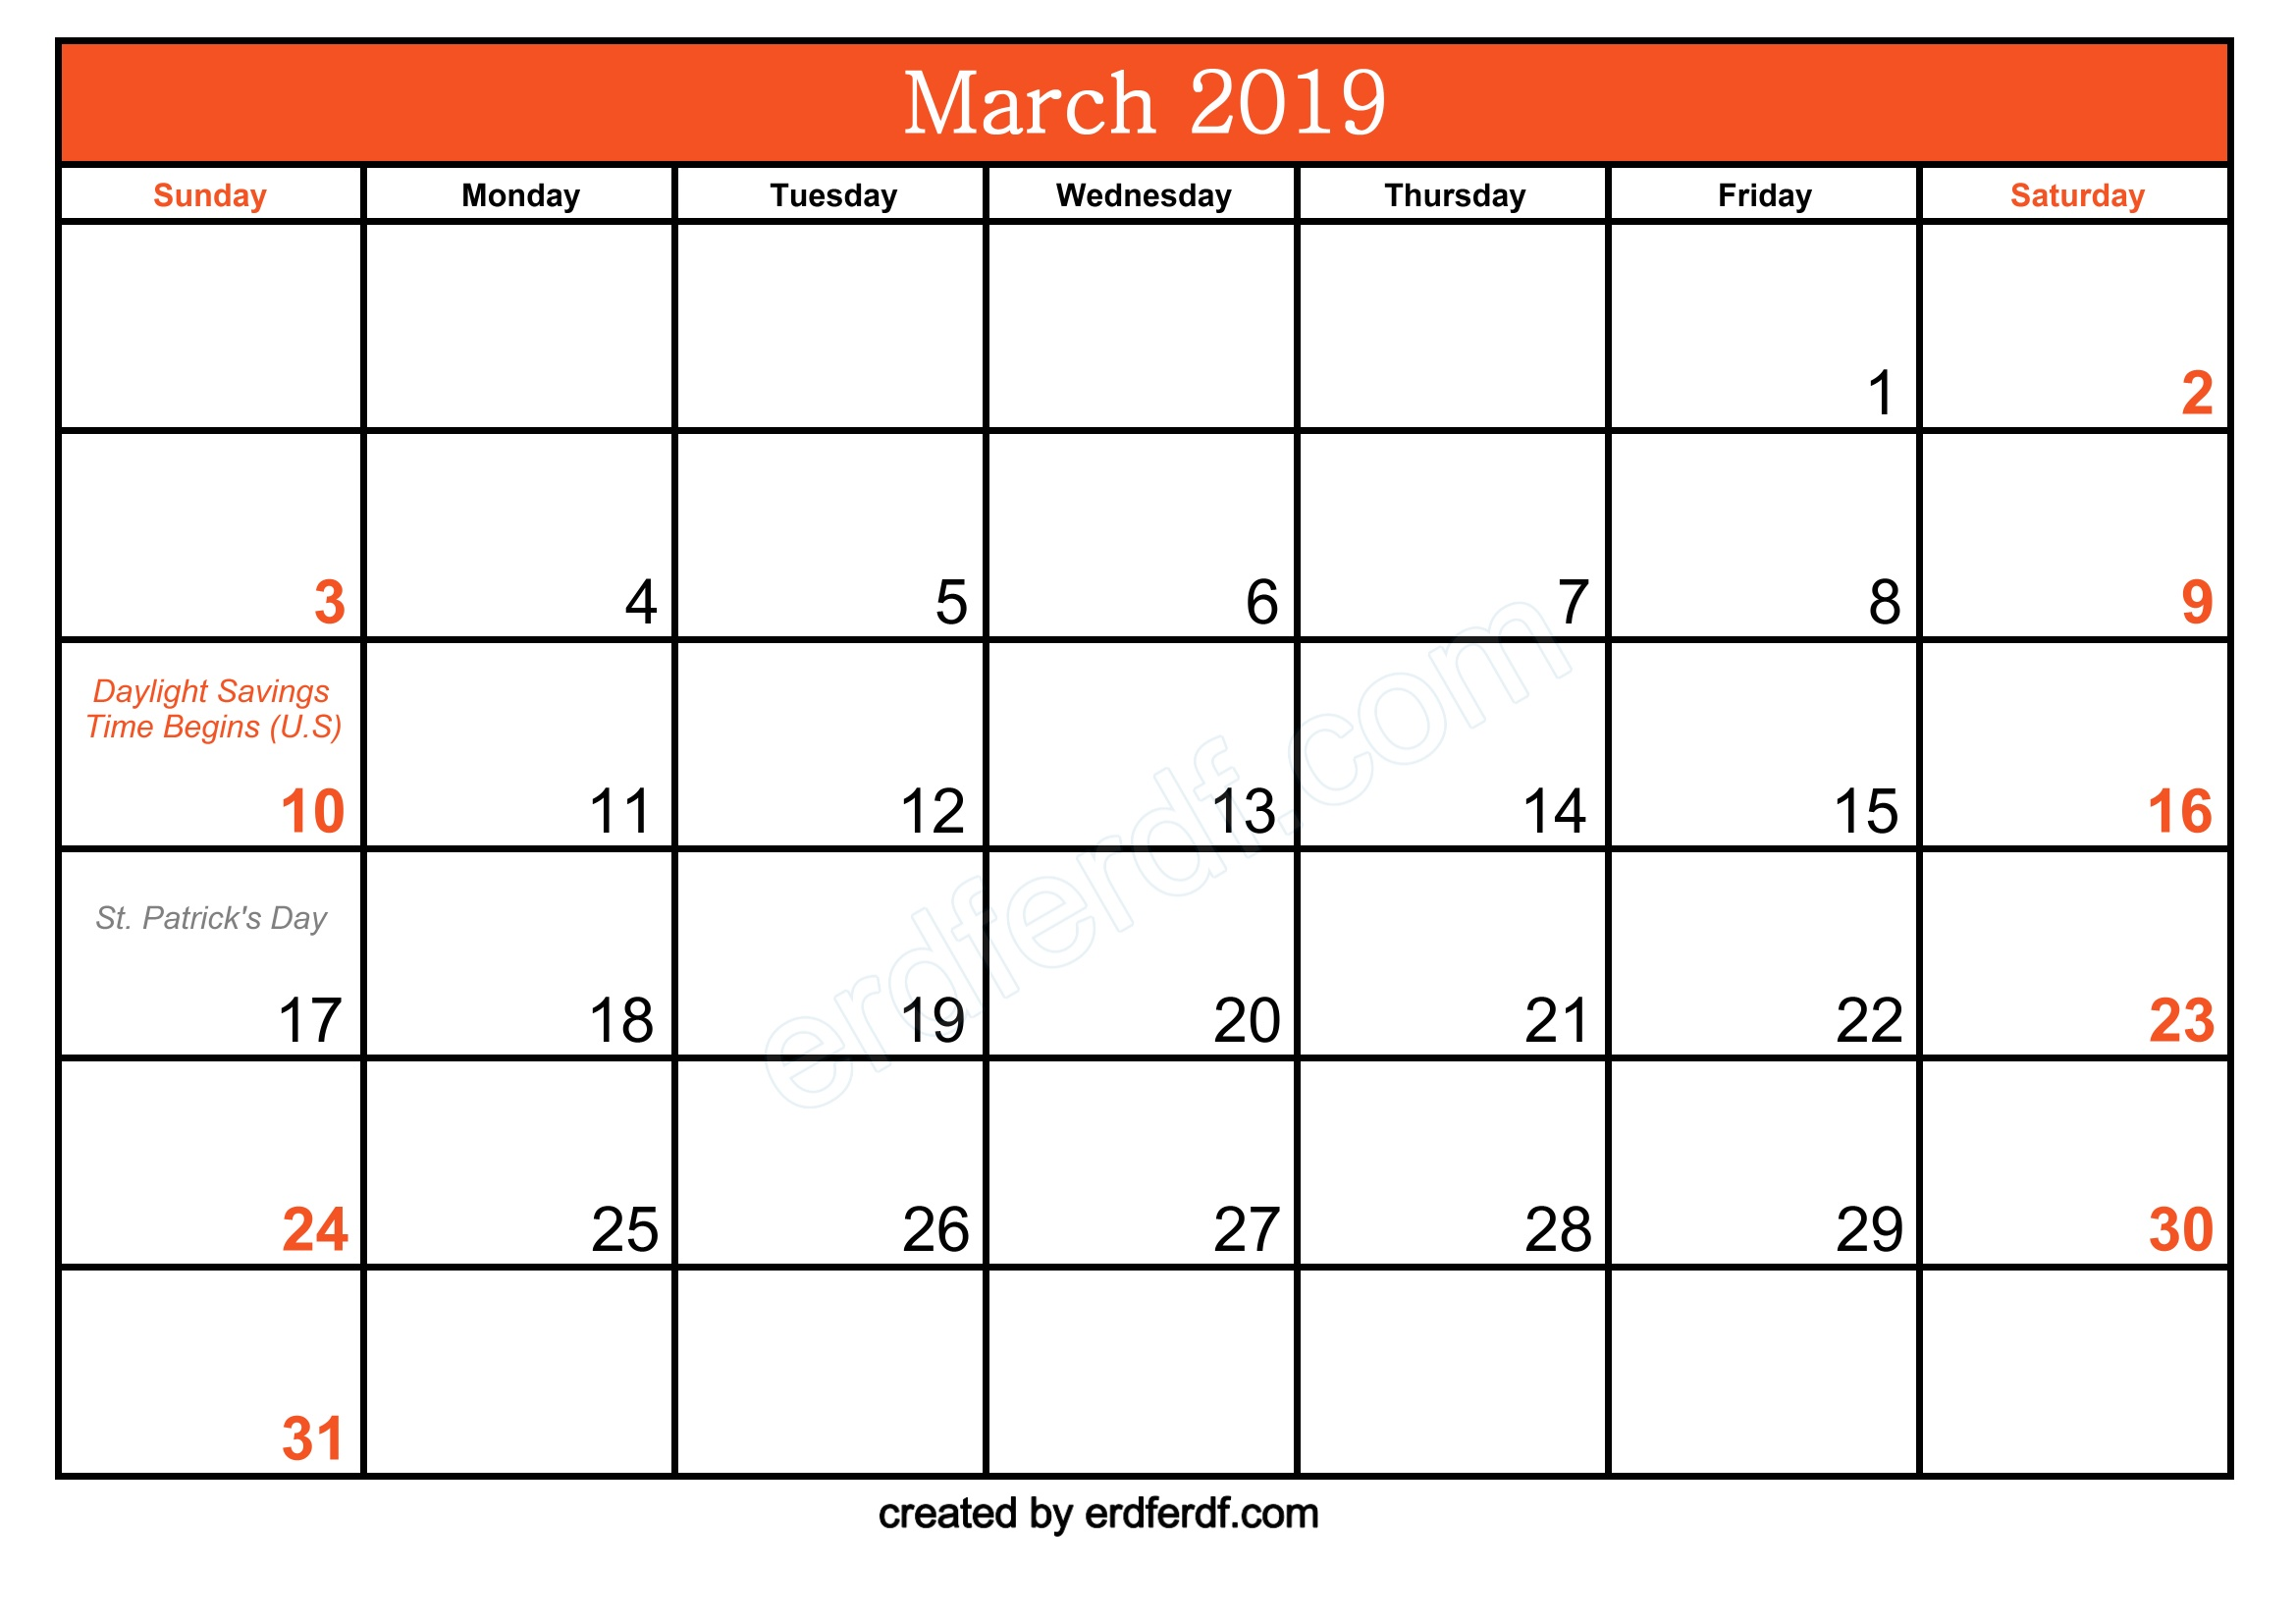 Free March 2019 Printable Calendar With Holidays